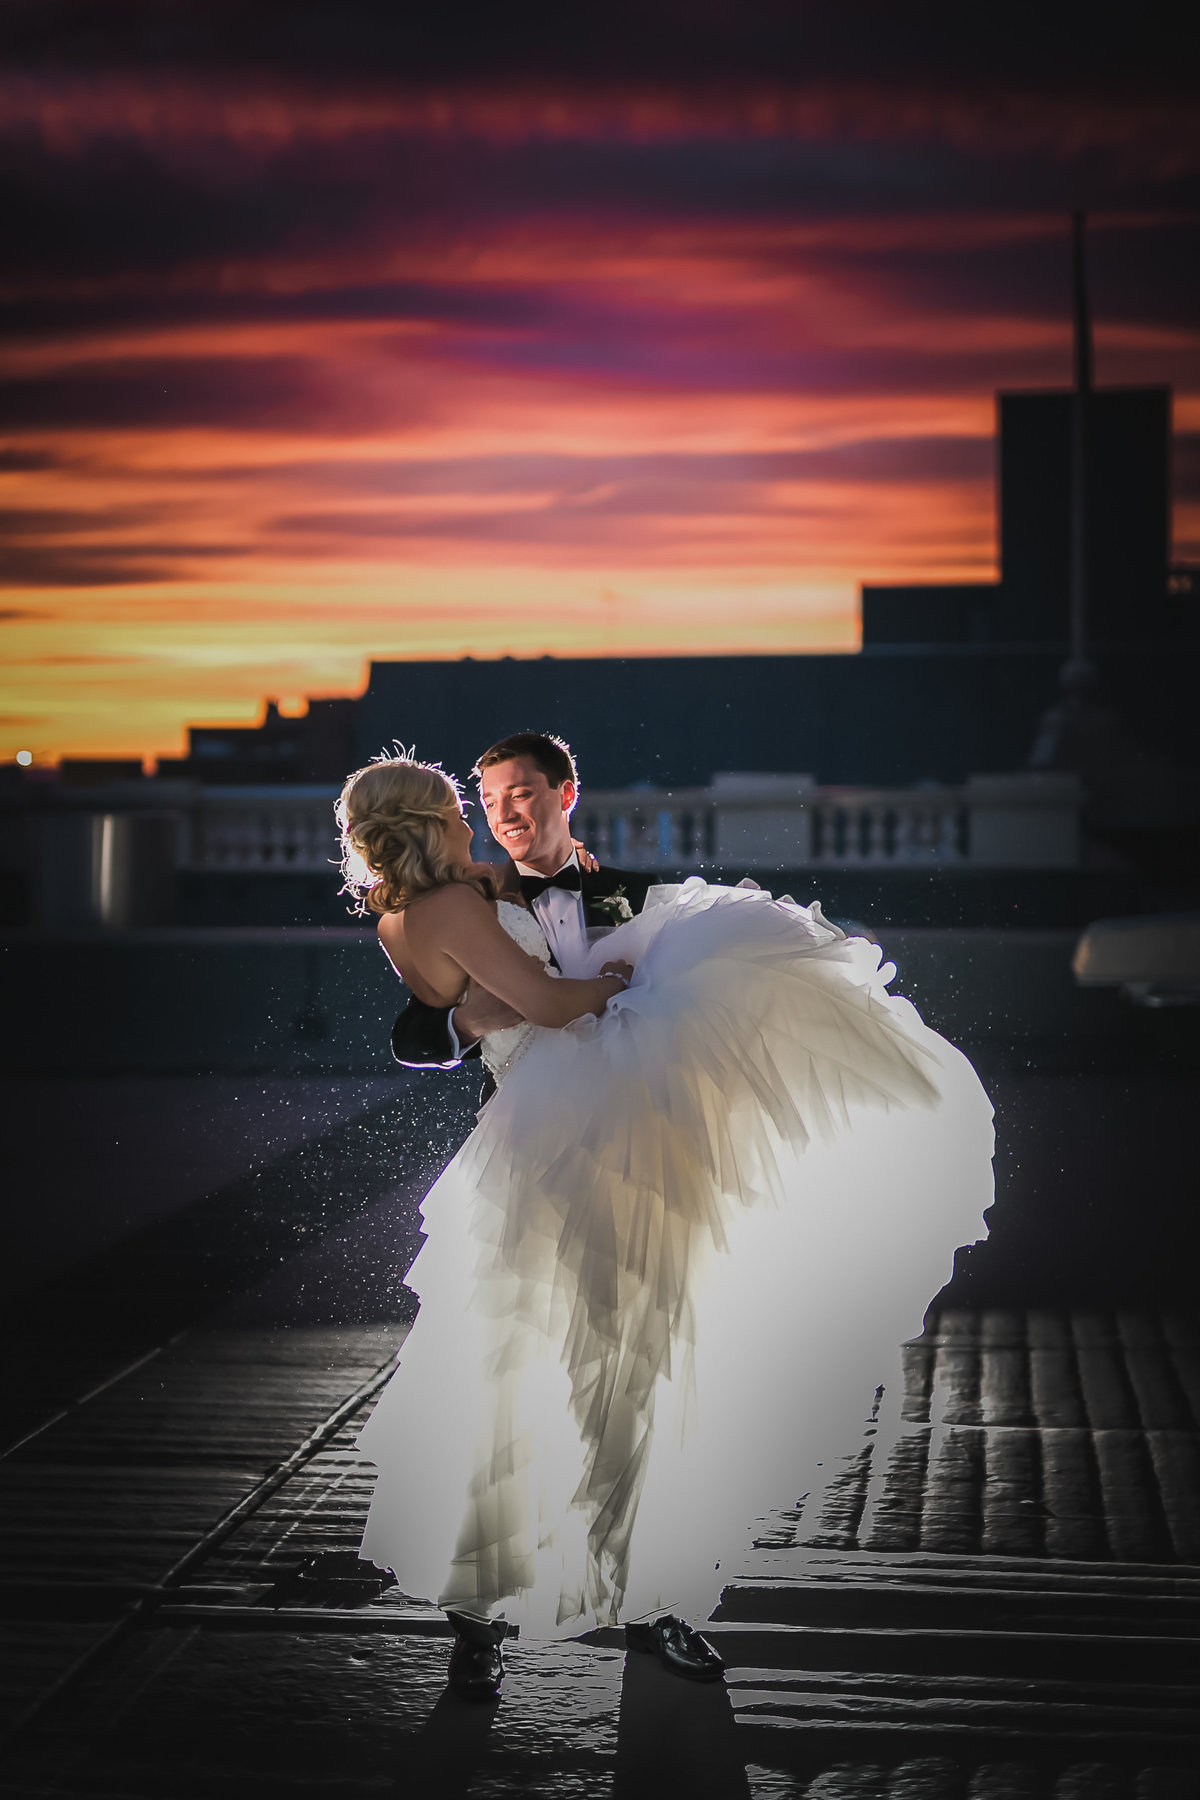 lifting-up-bride-rooftop